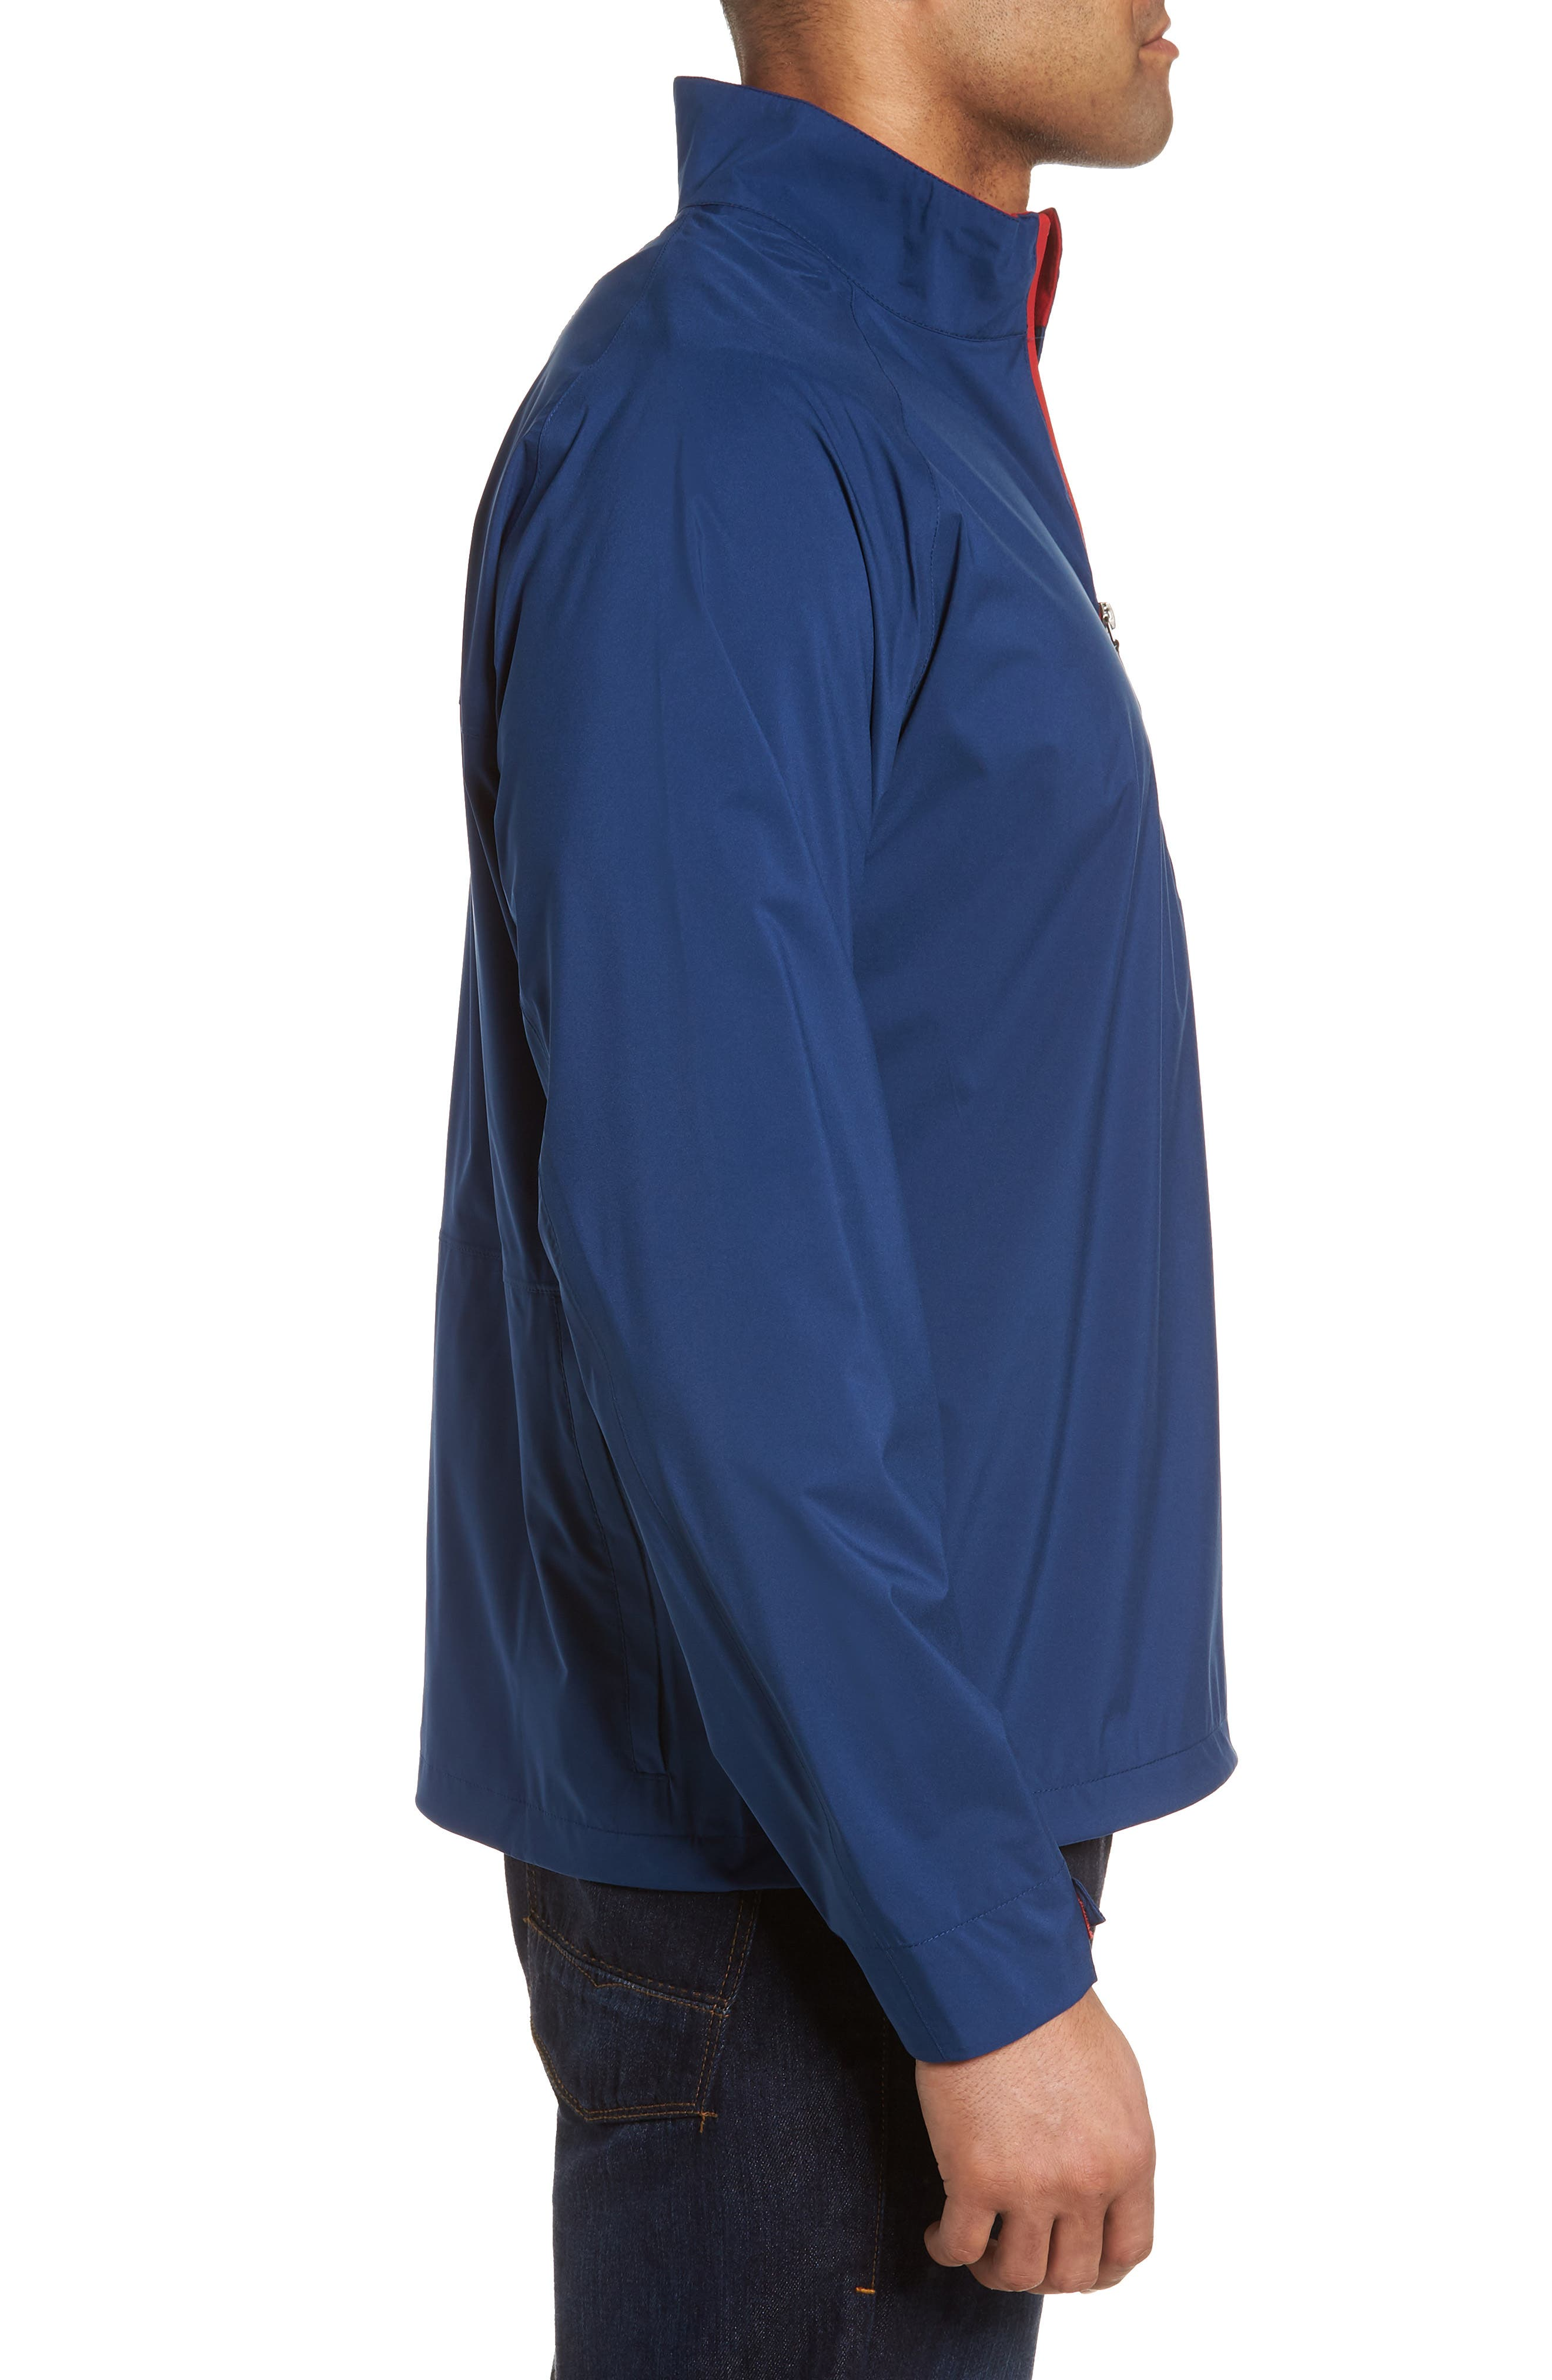 Regular Fit Half Zip Performance Pullover,                             Alternate thumbnail 3, color,                             411